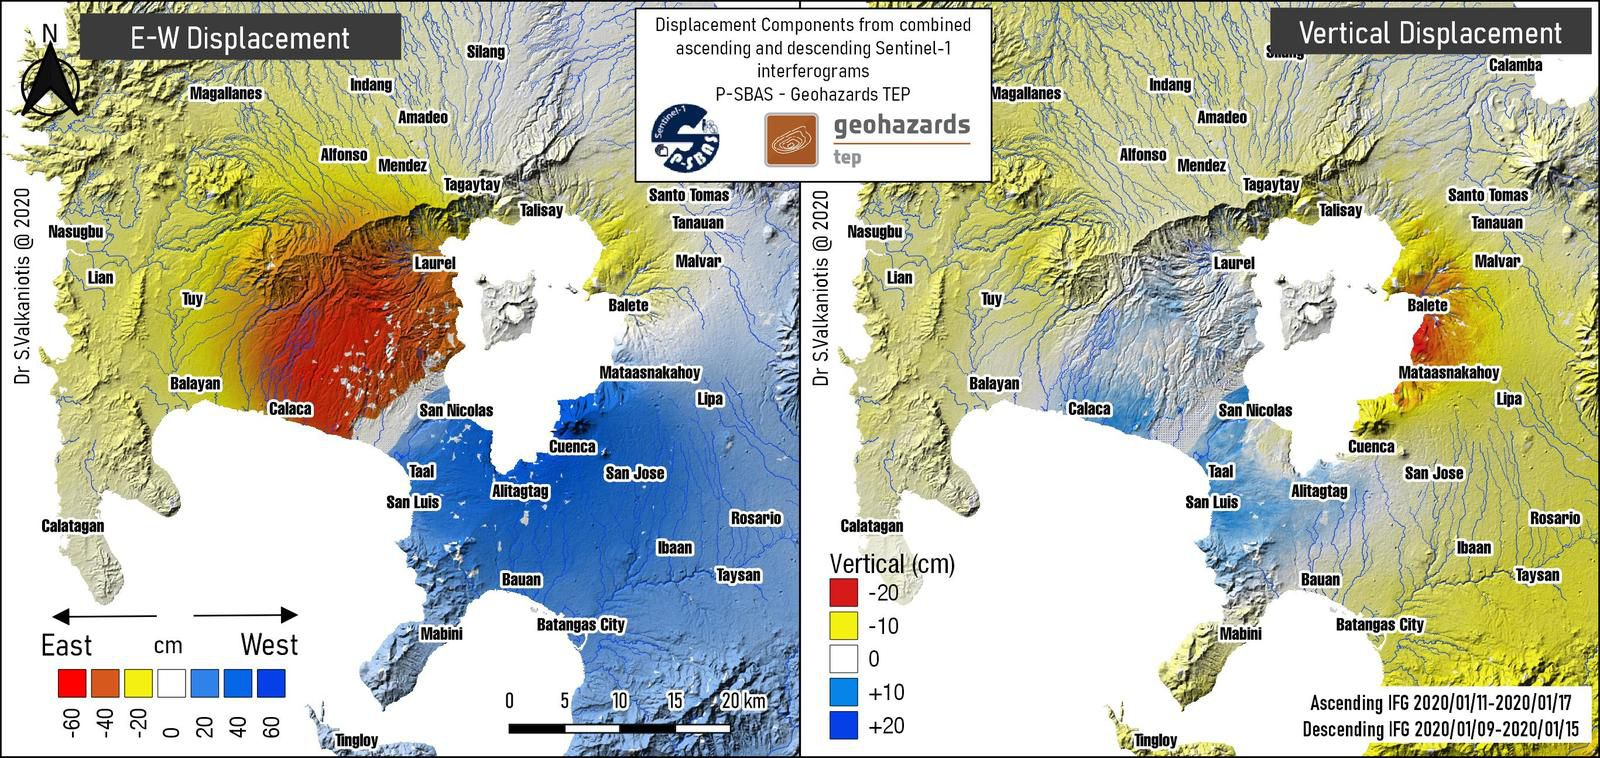 Taal region - Vertical and lateral displacement on 18.01.2020 - Doc. Geohazards TEP / via Sotiris Valkaniotis - one click to enlarge